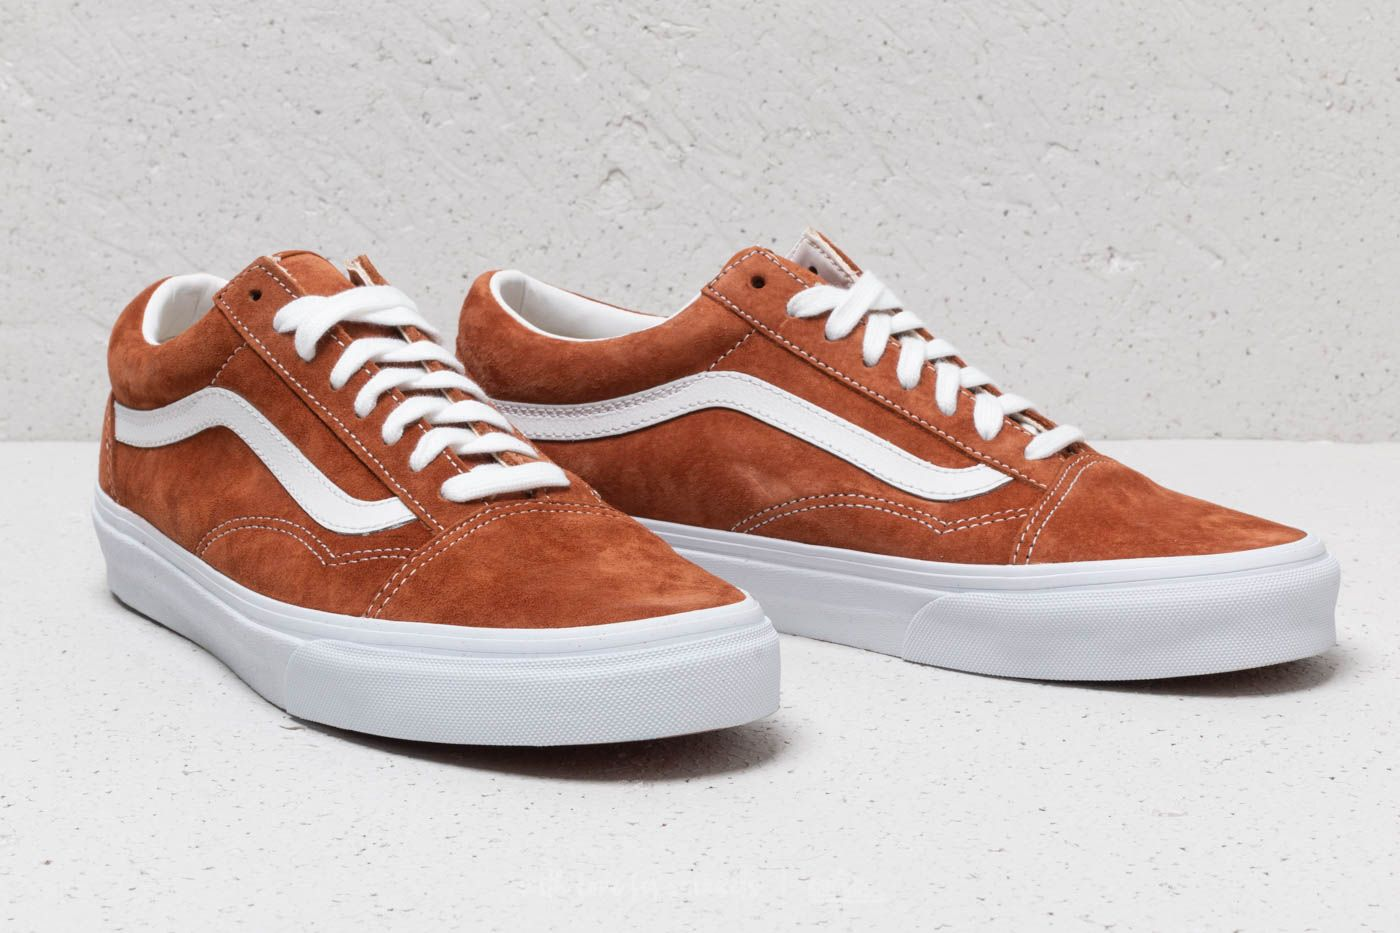 Vans Old Skool (Pig Suede) Leather Brown | Footshop